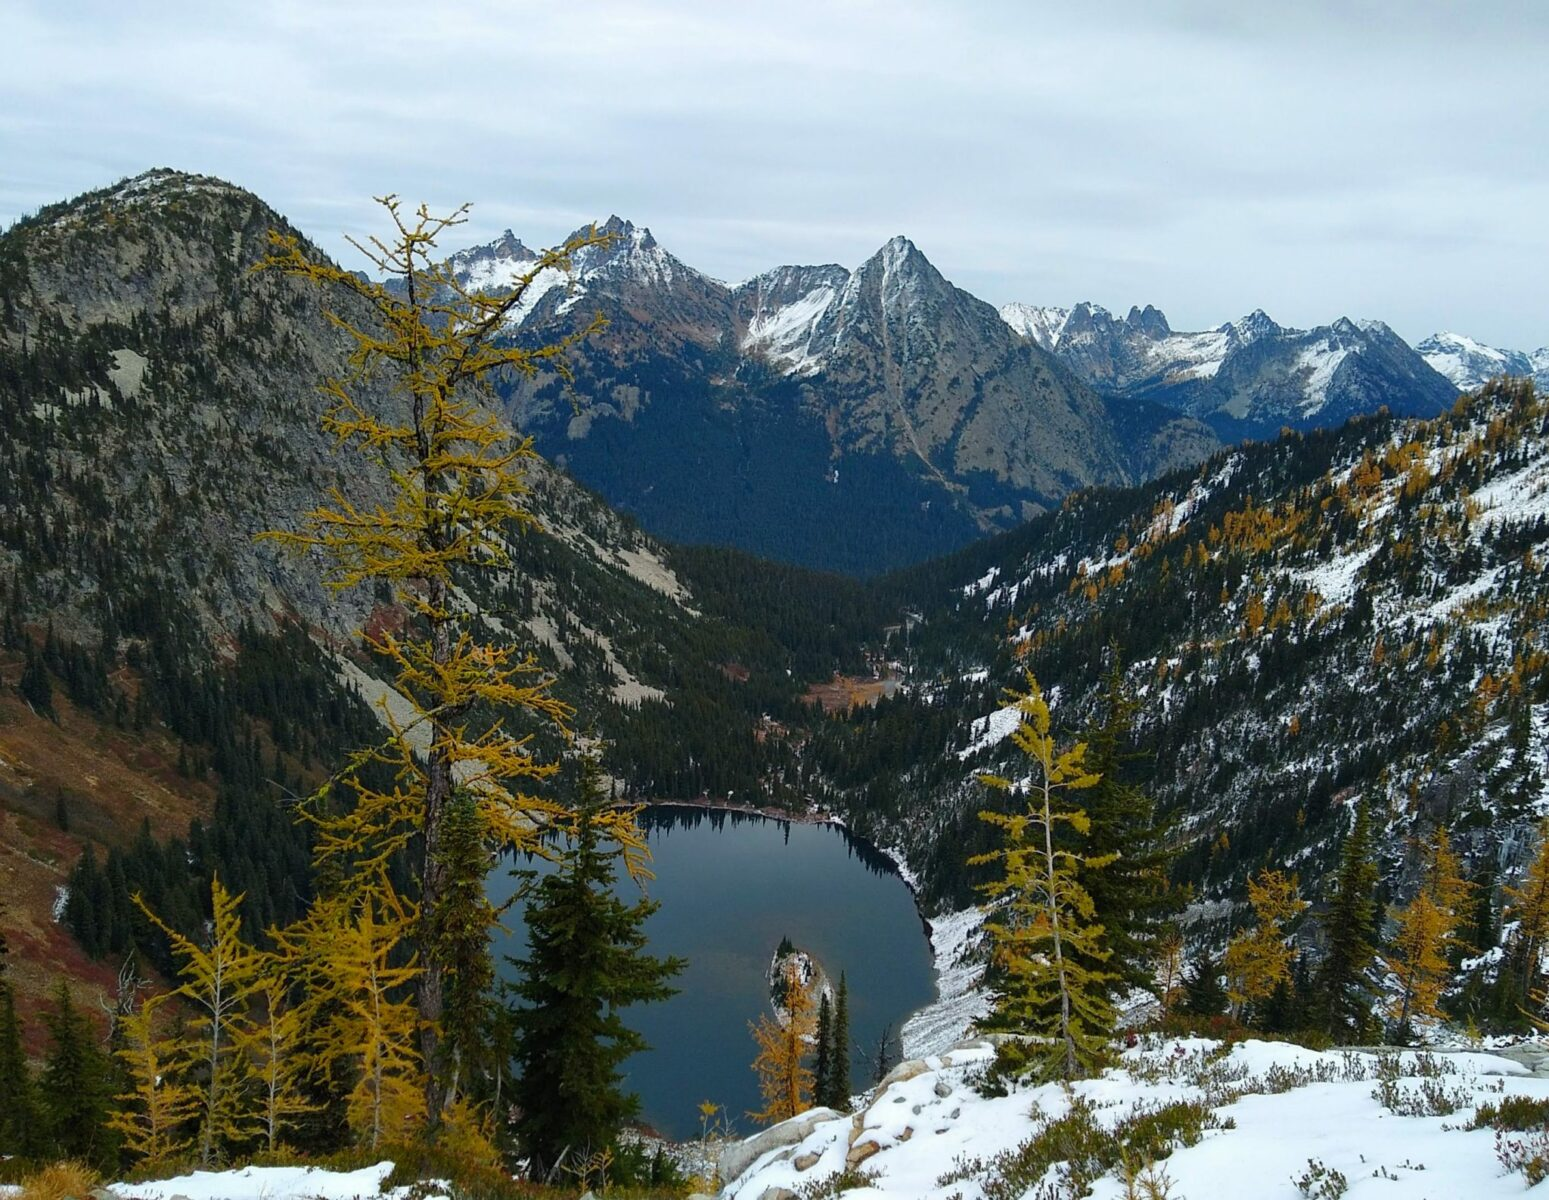 An alpine lake surrounded by forested mountains on the Maple Pass Loop in the North Cascades. There are golden larch trees in the foreground and high snowy mountains in the background